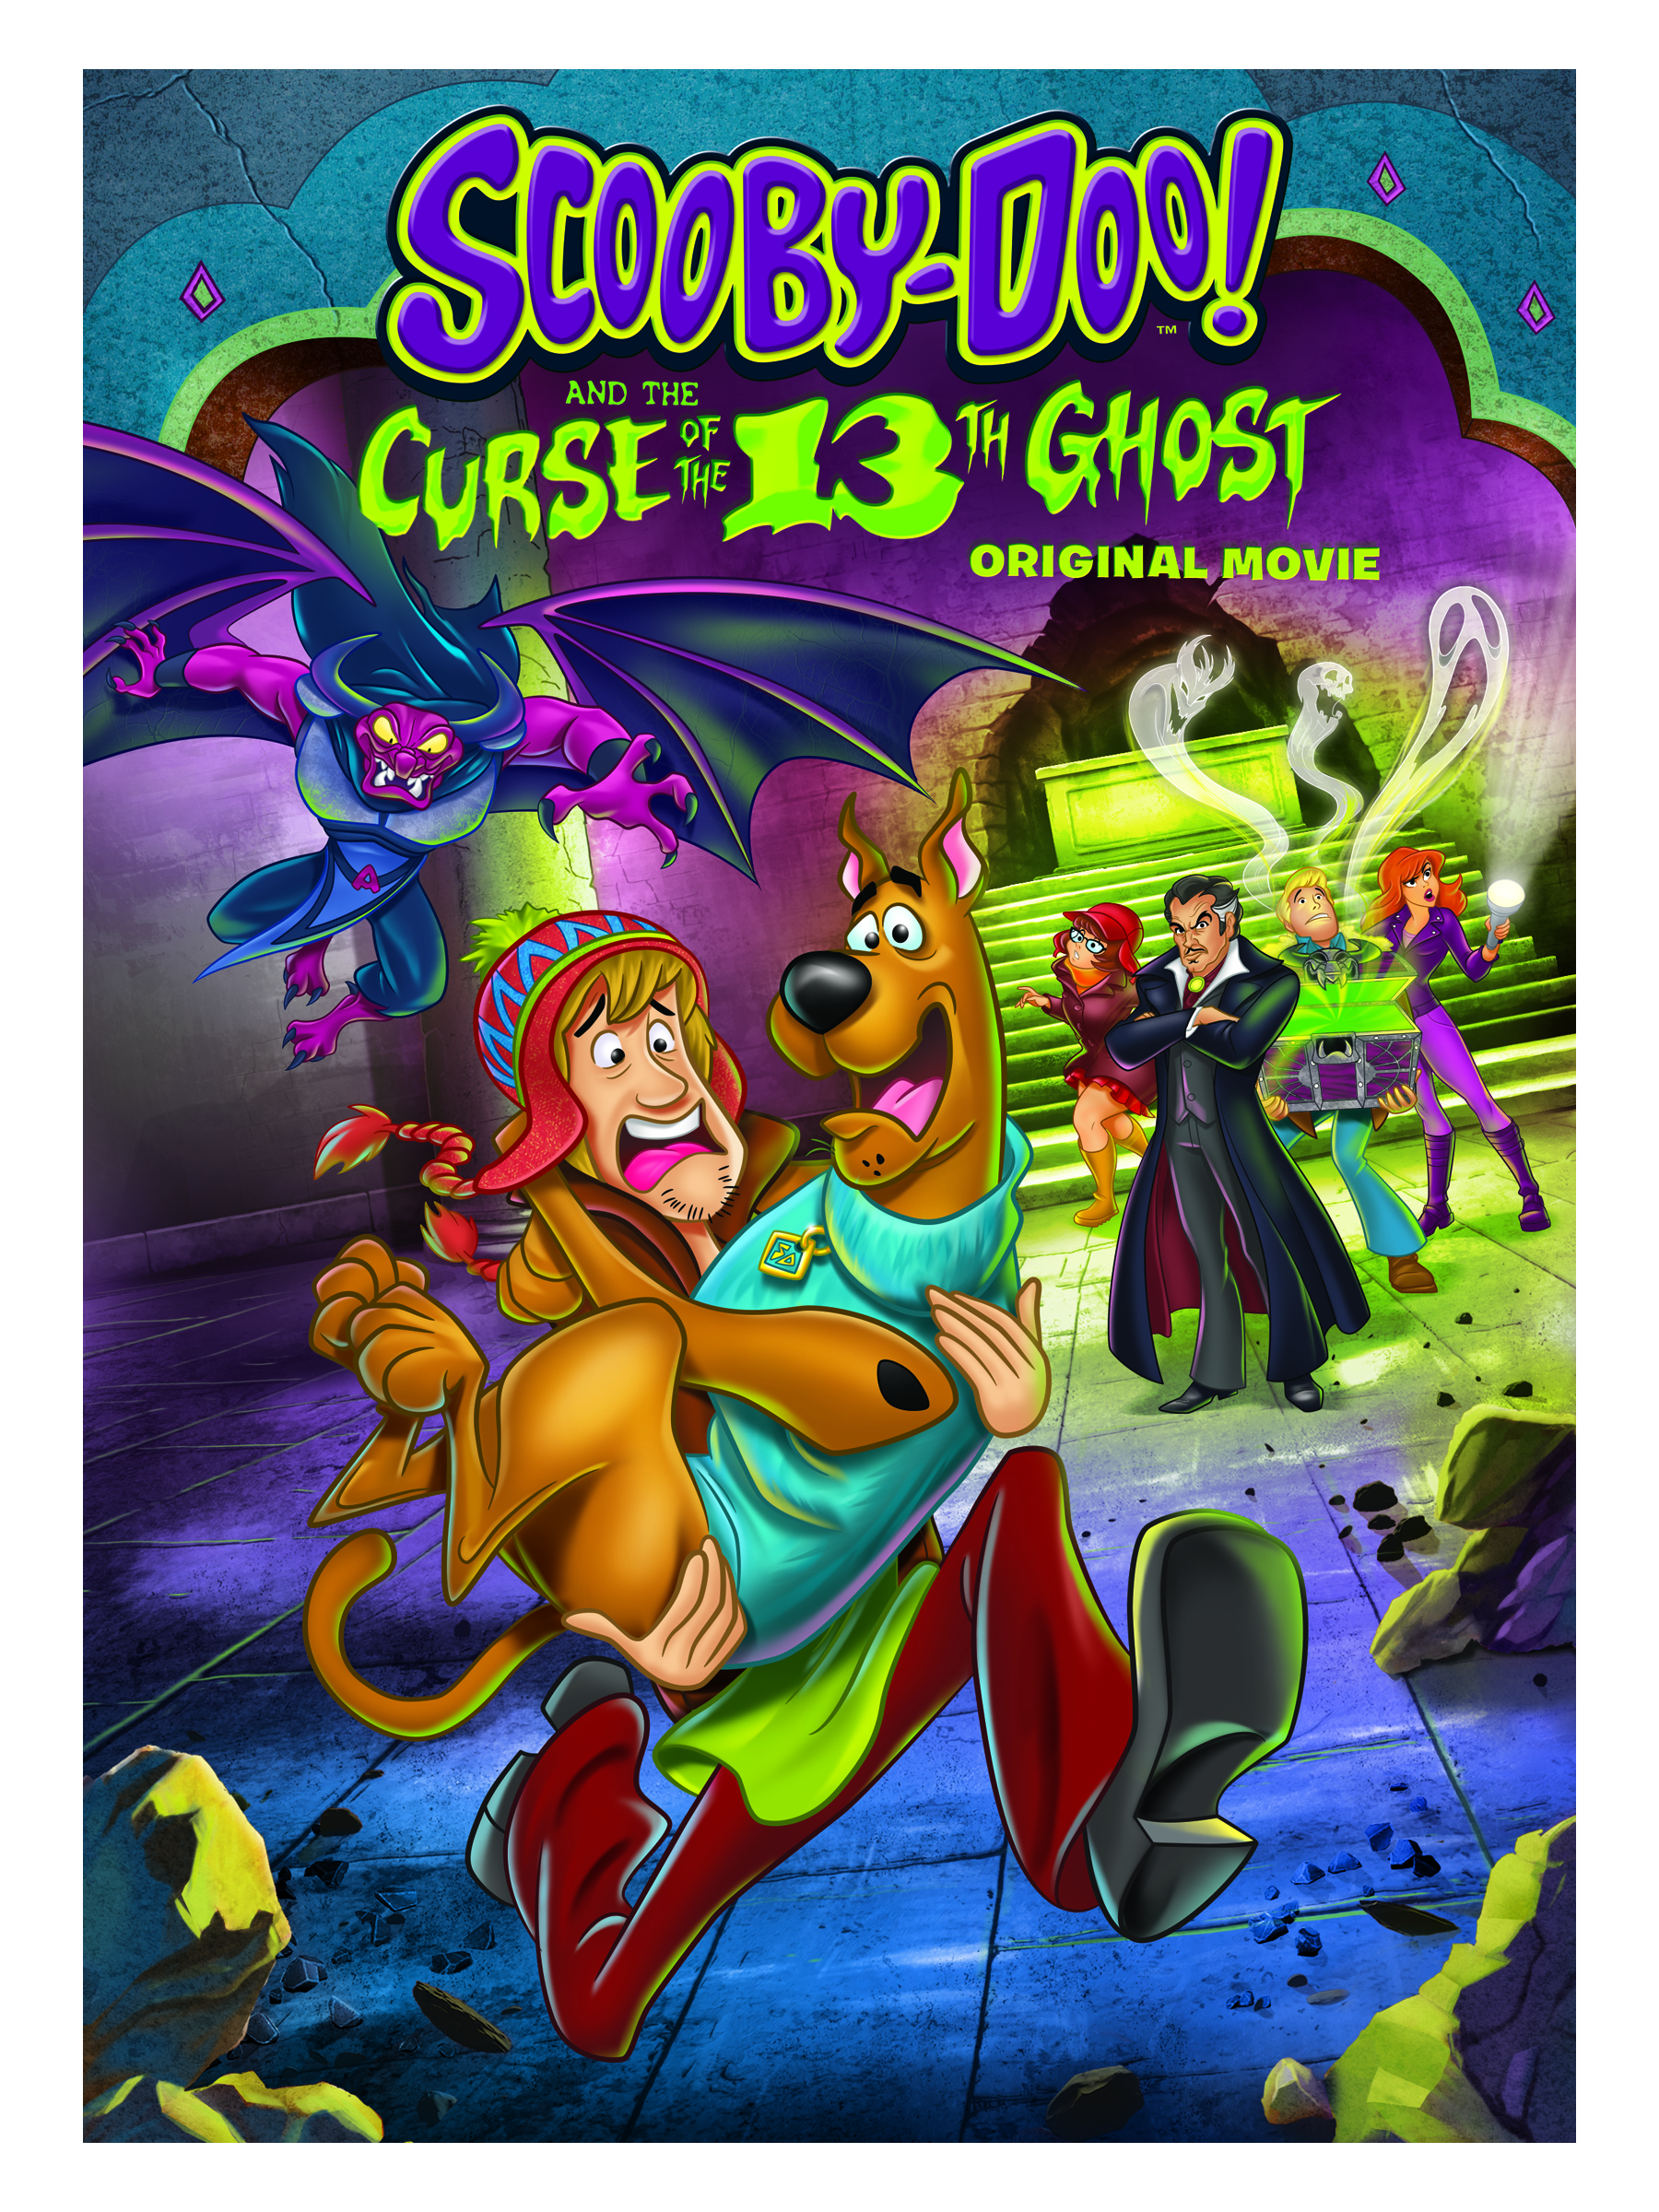 scooby doo and the thirteenth ghost 13th vvincent shaaggy flimflam cartoon animated feature release new pr friendly influencer video dvd digital movie film kids teens family blog blogger tv spooky scary funny scrappy the gang those meddling kids